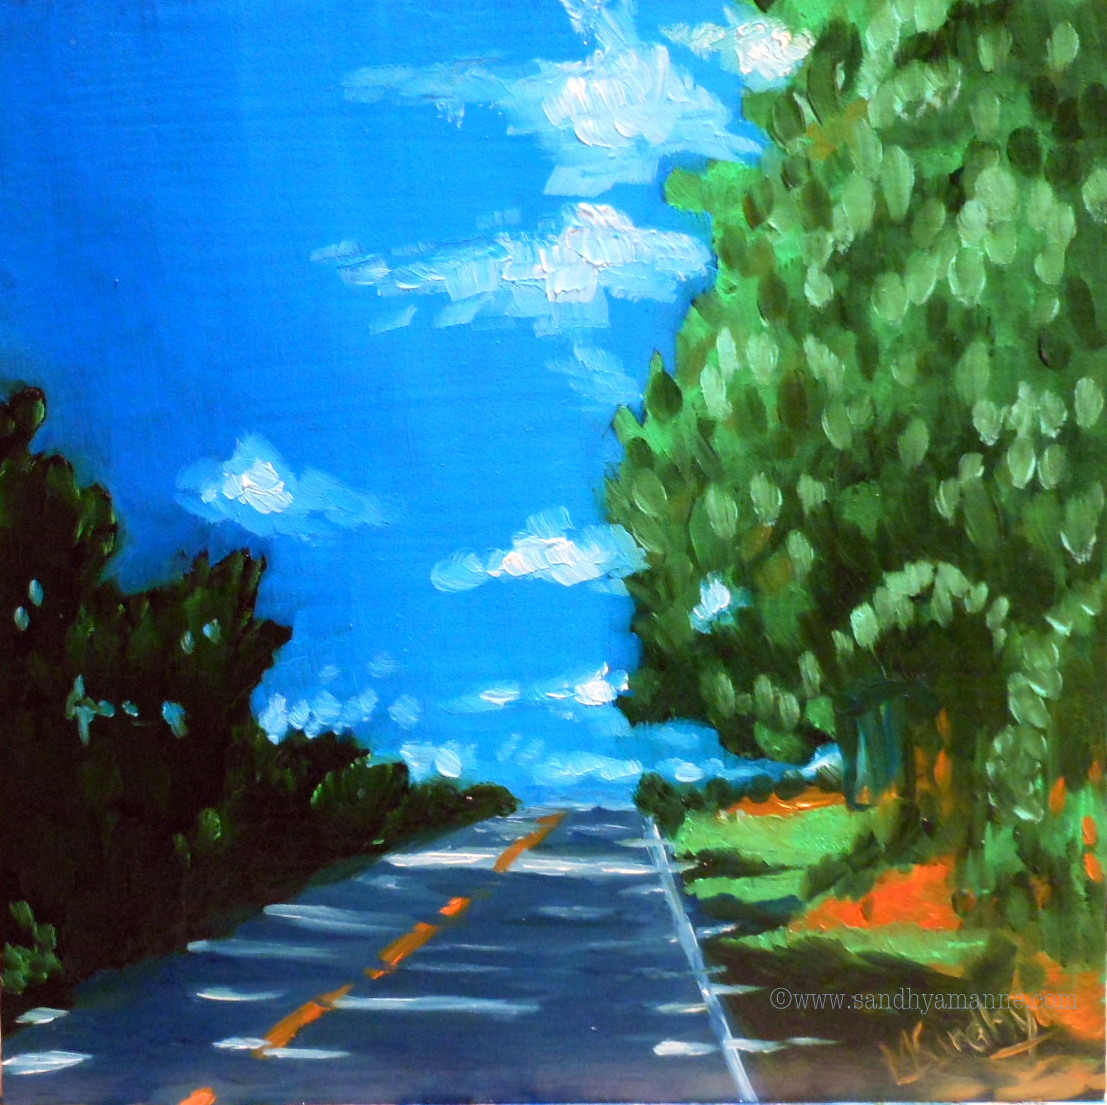 """""""On the road"""" 6X6 inches Oils on Panel ©sandhyamanne"""